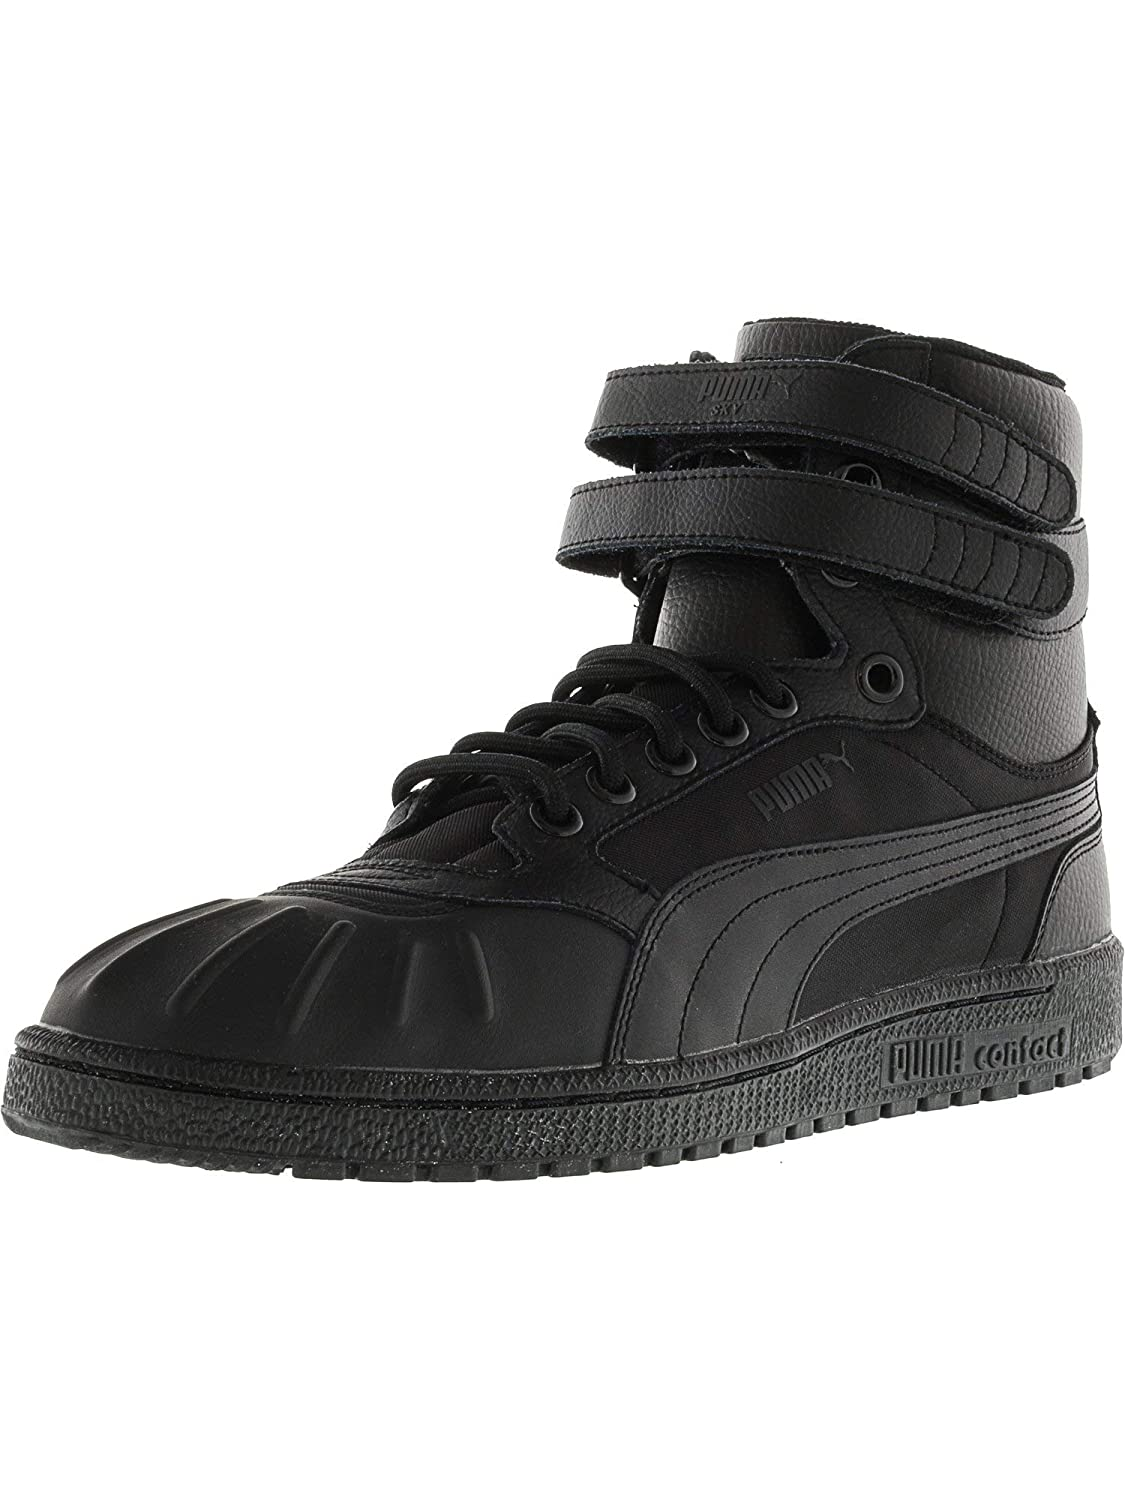 Details about Puma Sky Ii Hi Duck Winter Mens Black Brown Leather High Sneakers Shoes Size 11